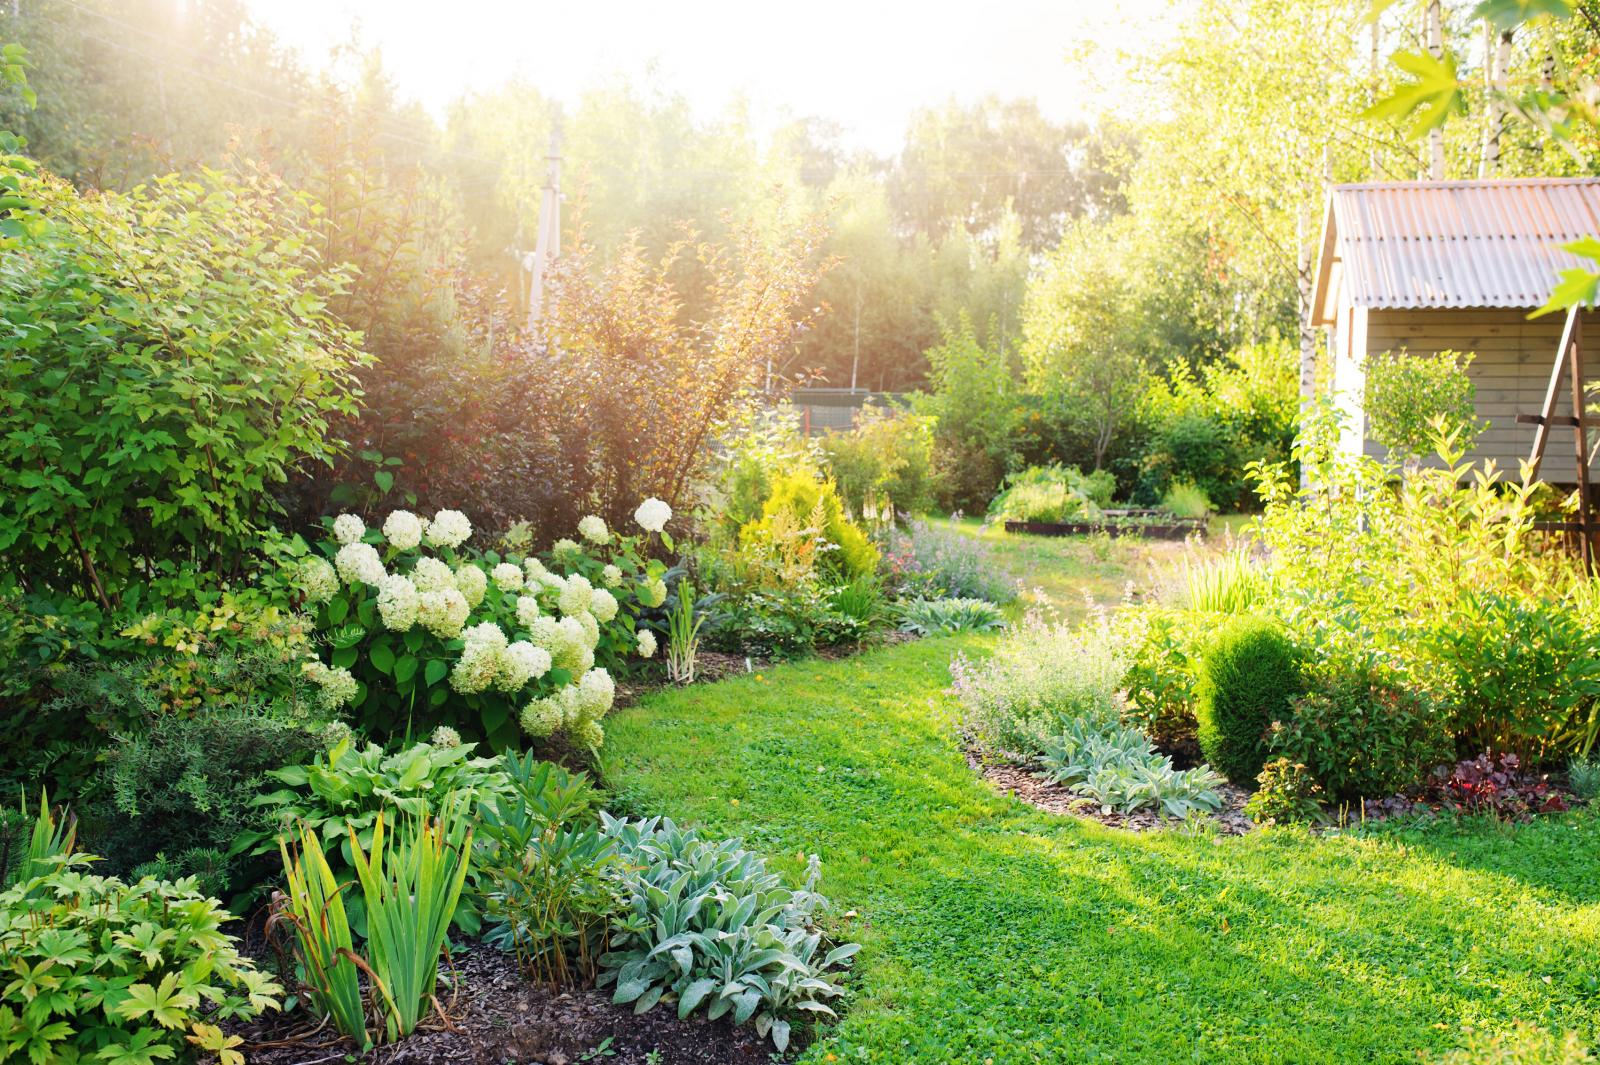 A cottage garden with a variety of plants and flowers